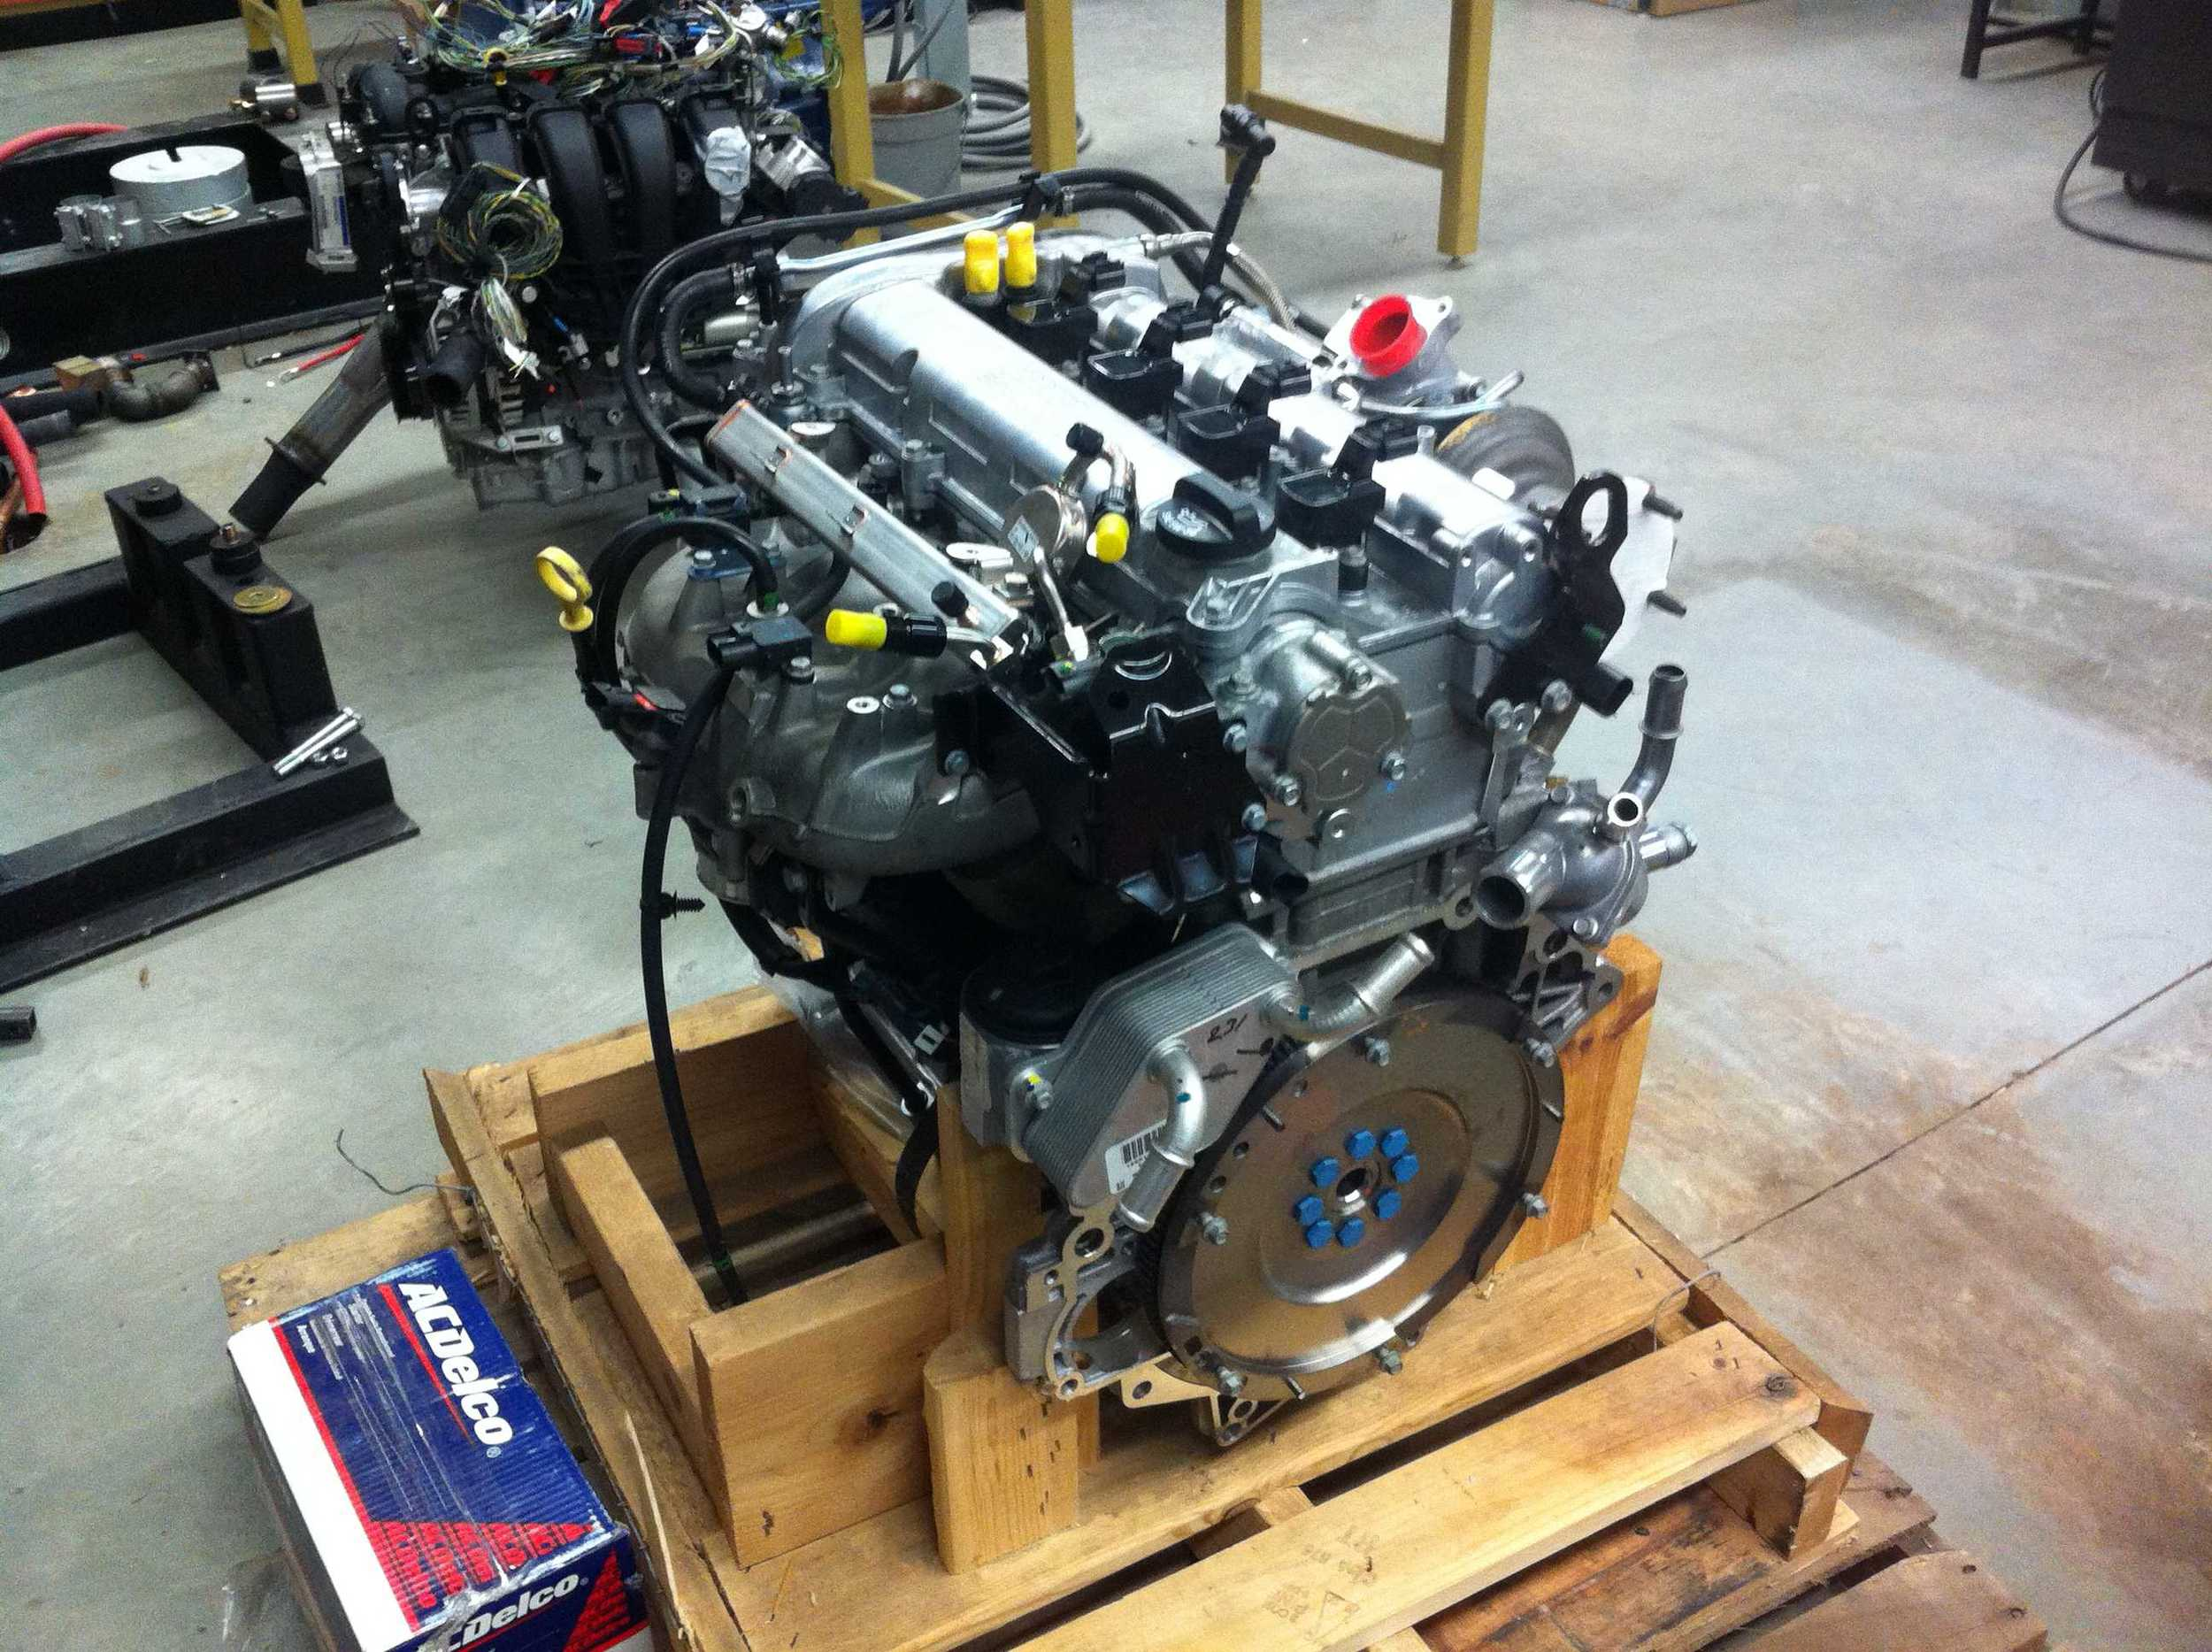 Engine as it was shipped.